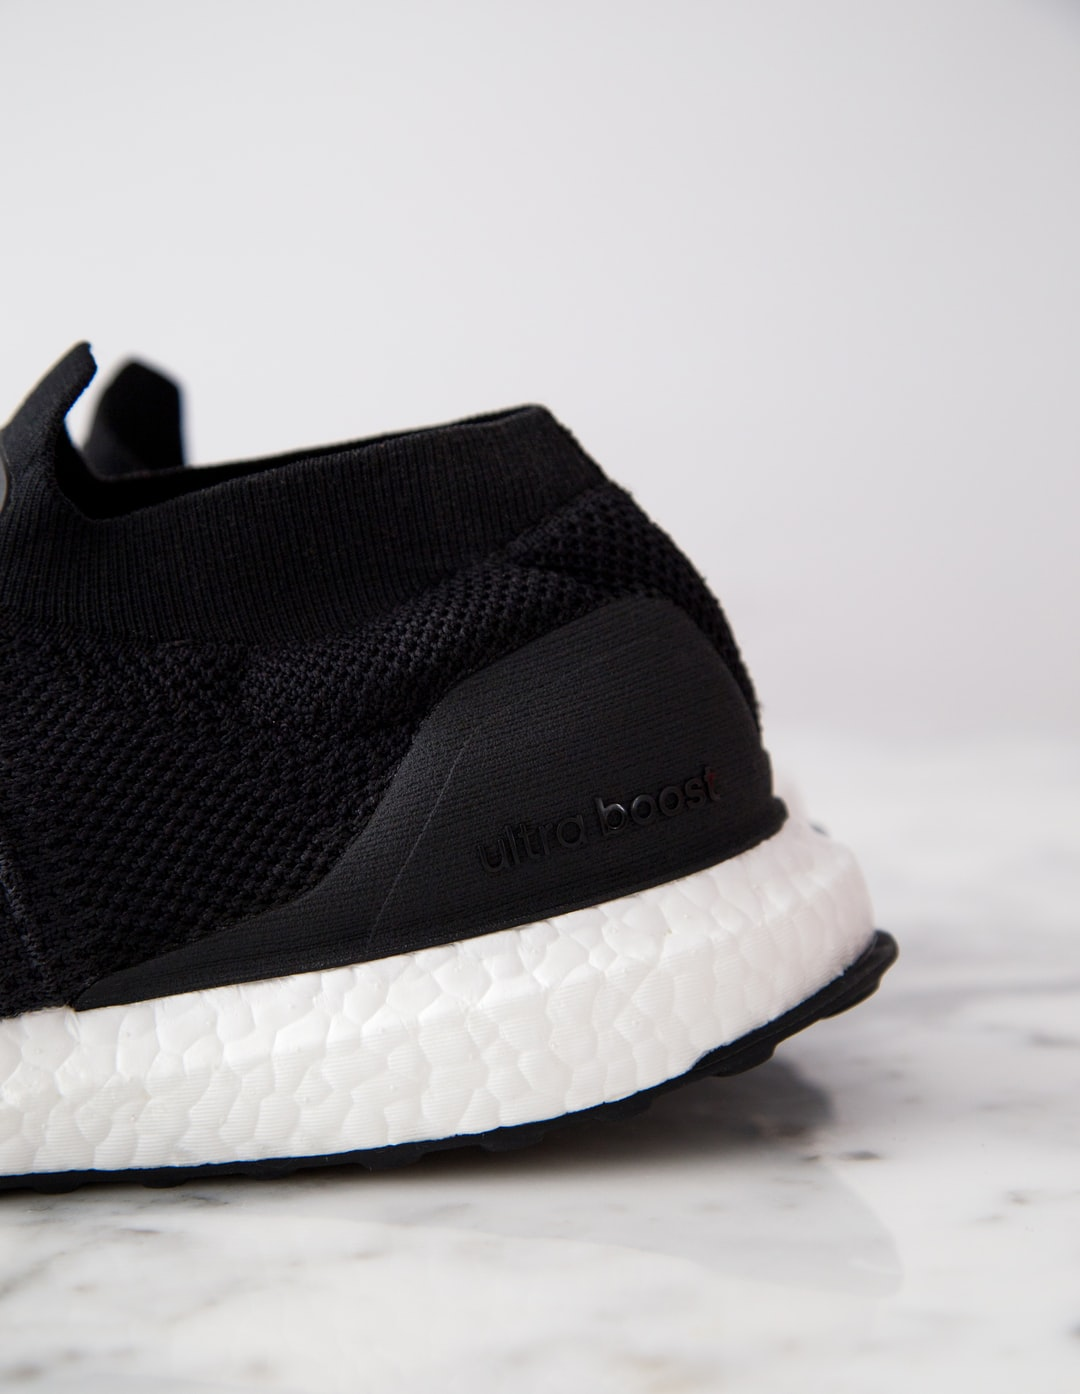 adidas UltraBoost Laceless Shoes in Black